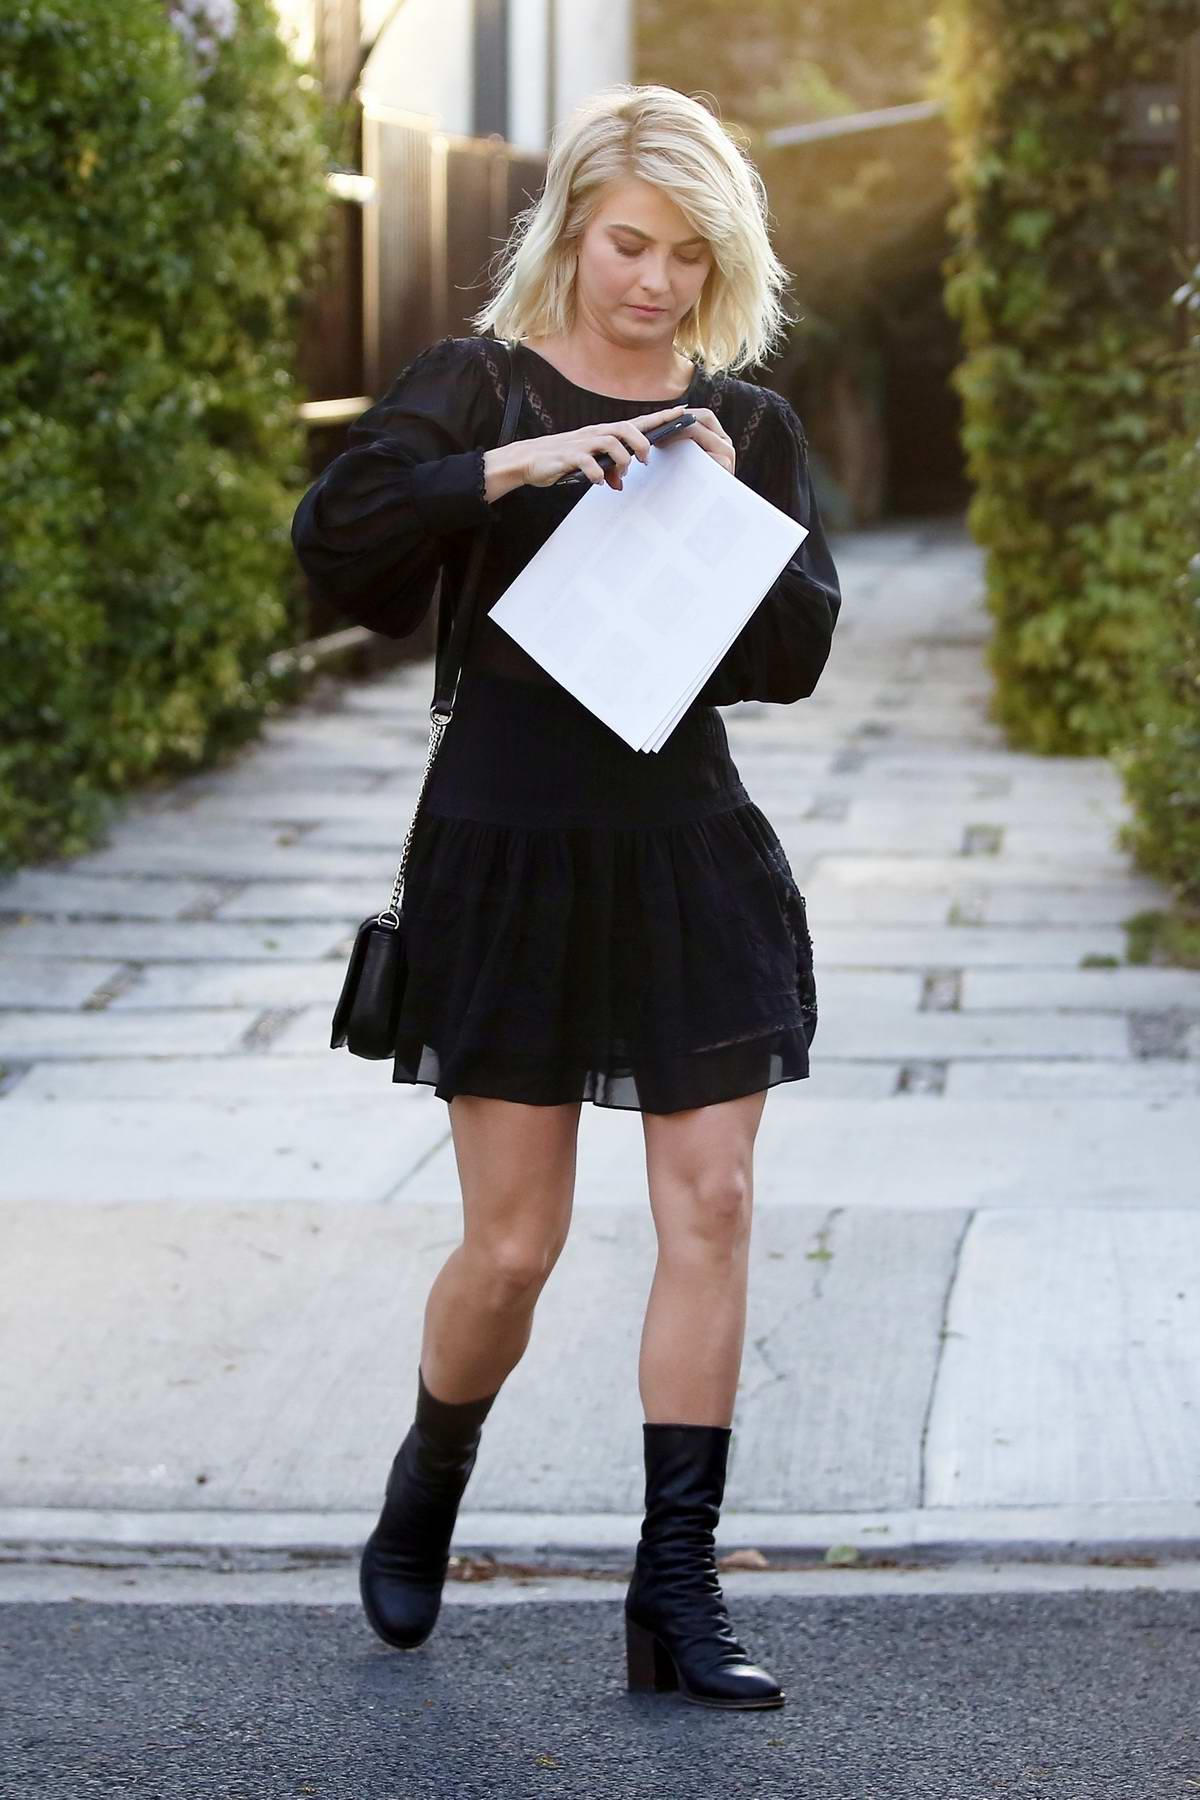 Julianne Hough get changed into a short black dress as she leaves after a business meeting in Los Angeles